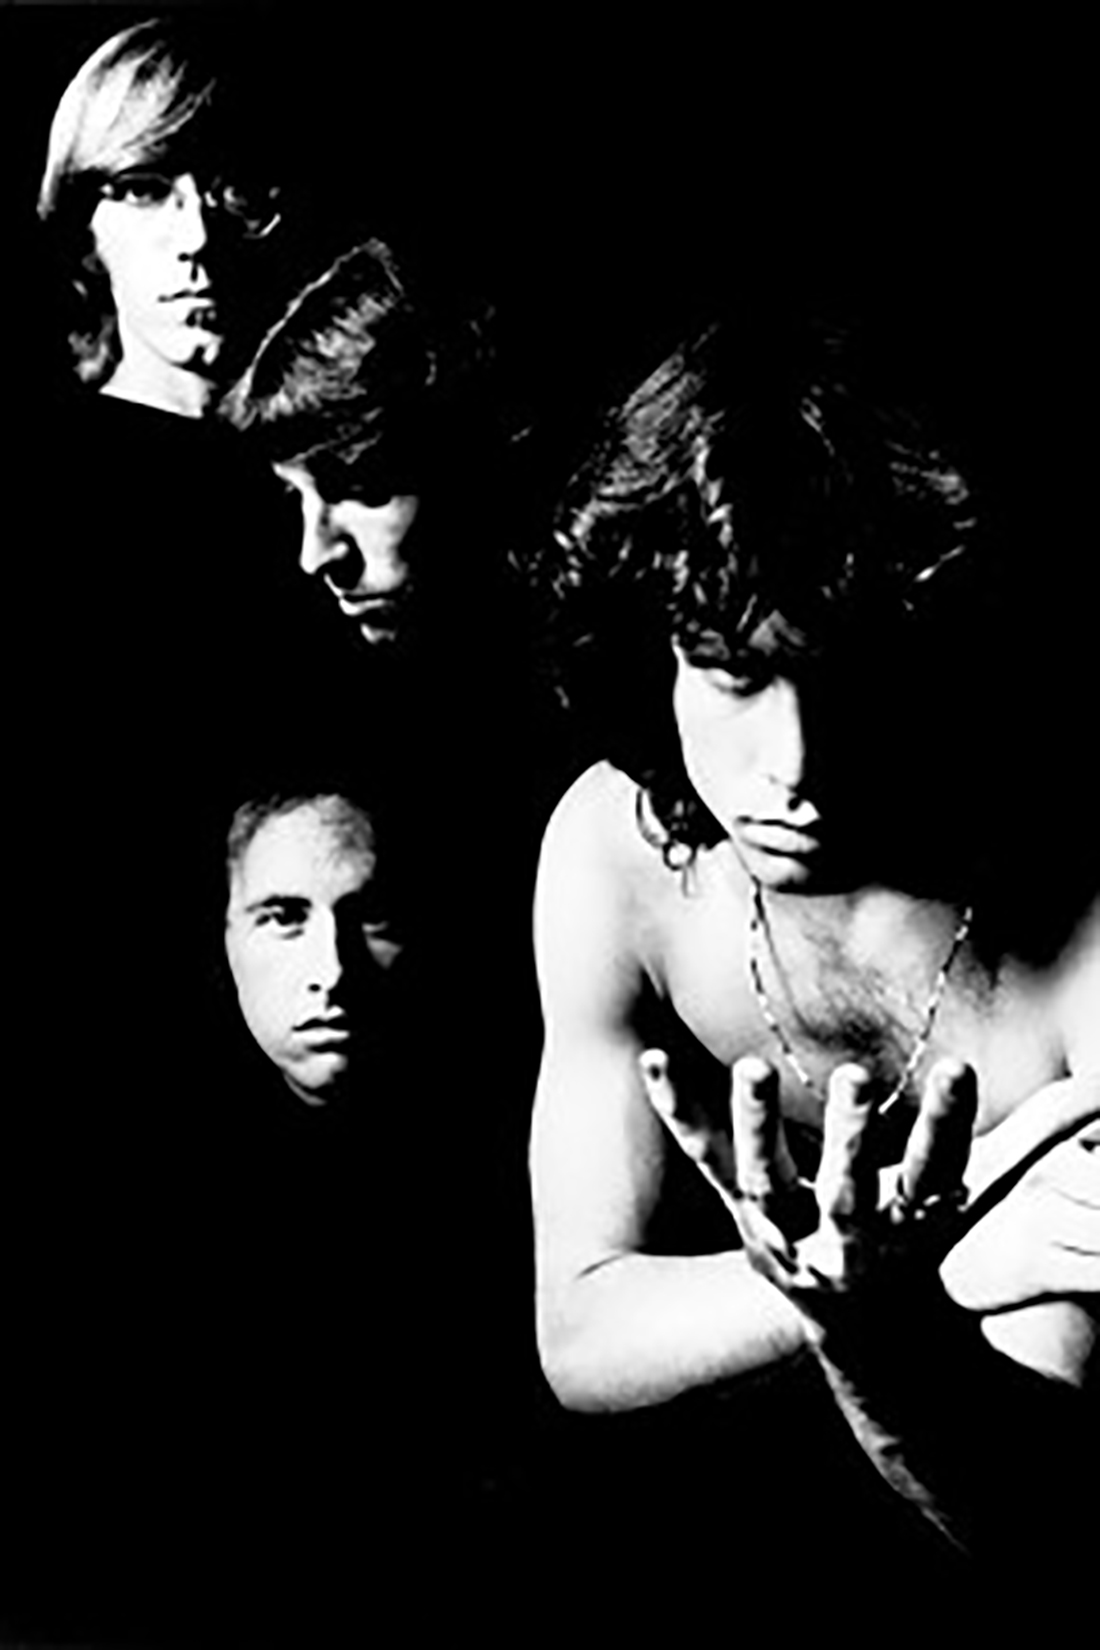 UNSPECIFIED - JANUARY 01:  Photo of DOORS; studio, posed - L-R: Ray Manzarek, Robbie Kreiger, John Densmore, Jim Morrison  (Photo by Charlie Gillett/Redferns)